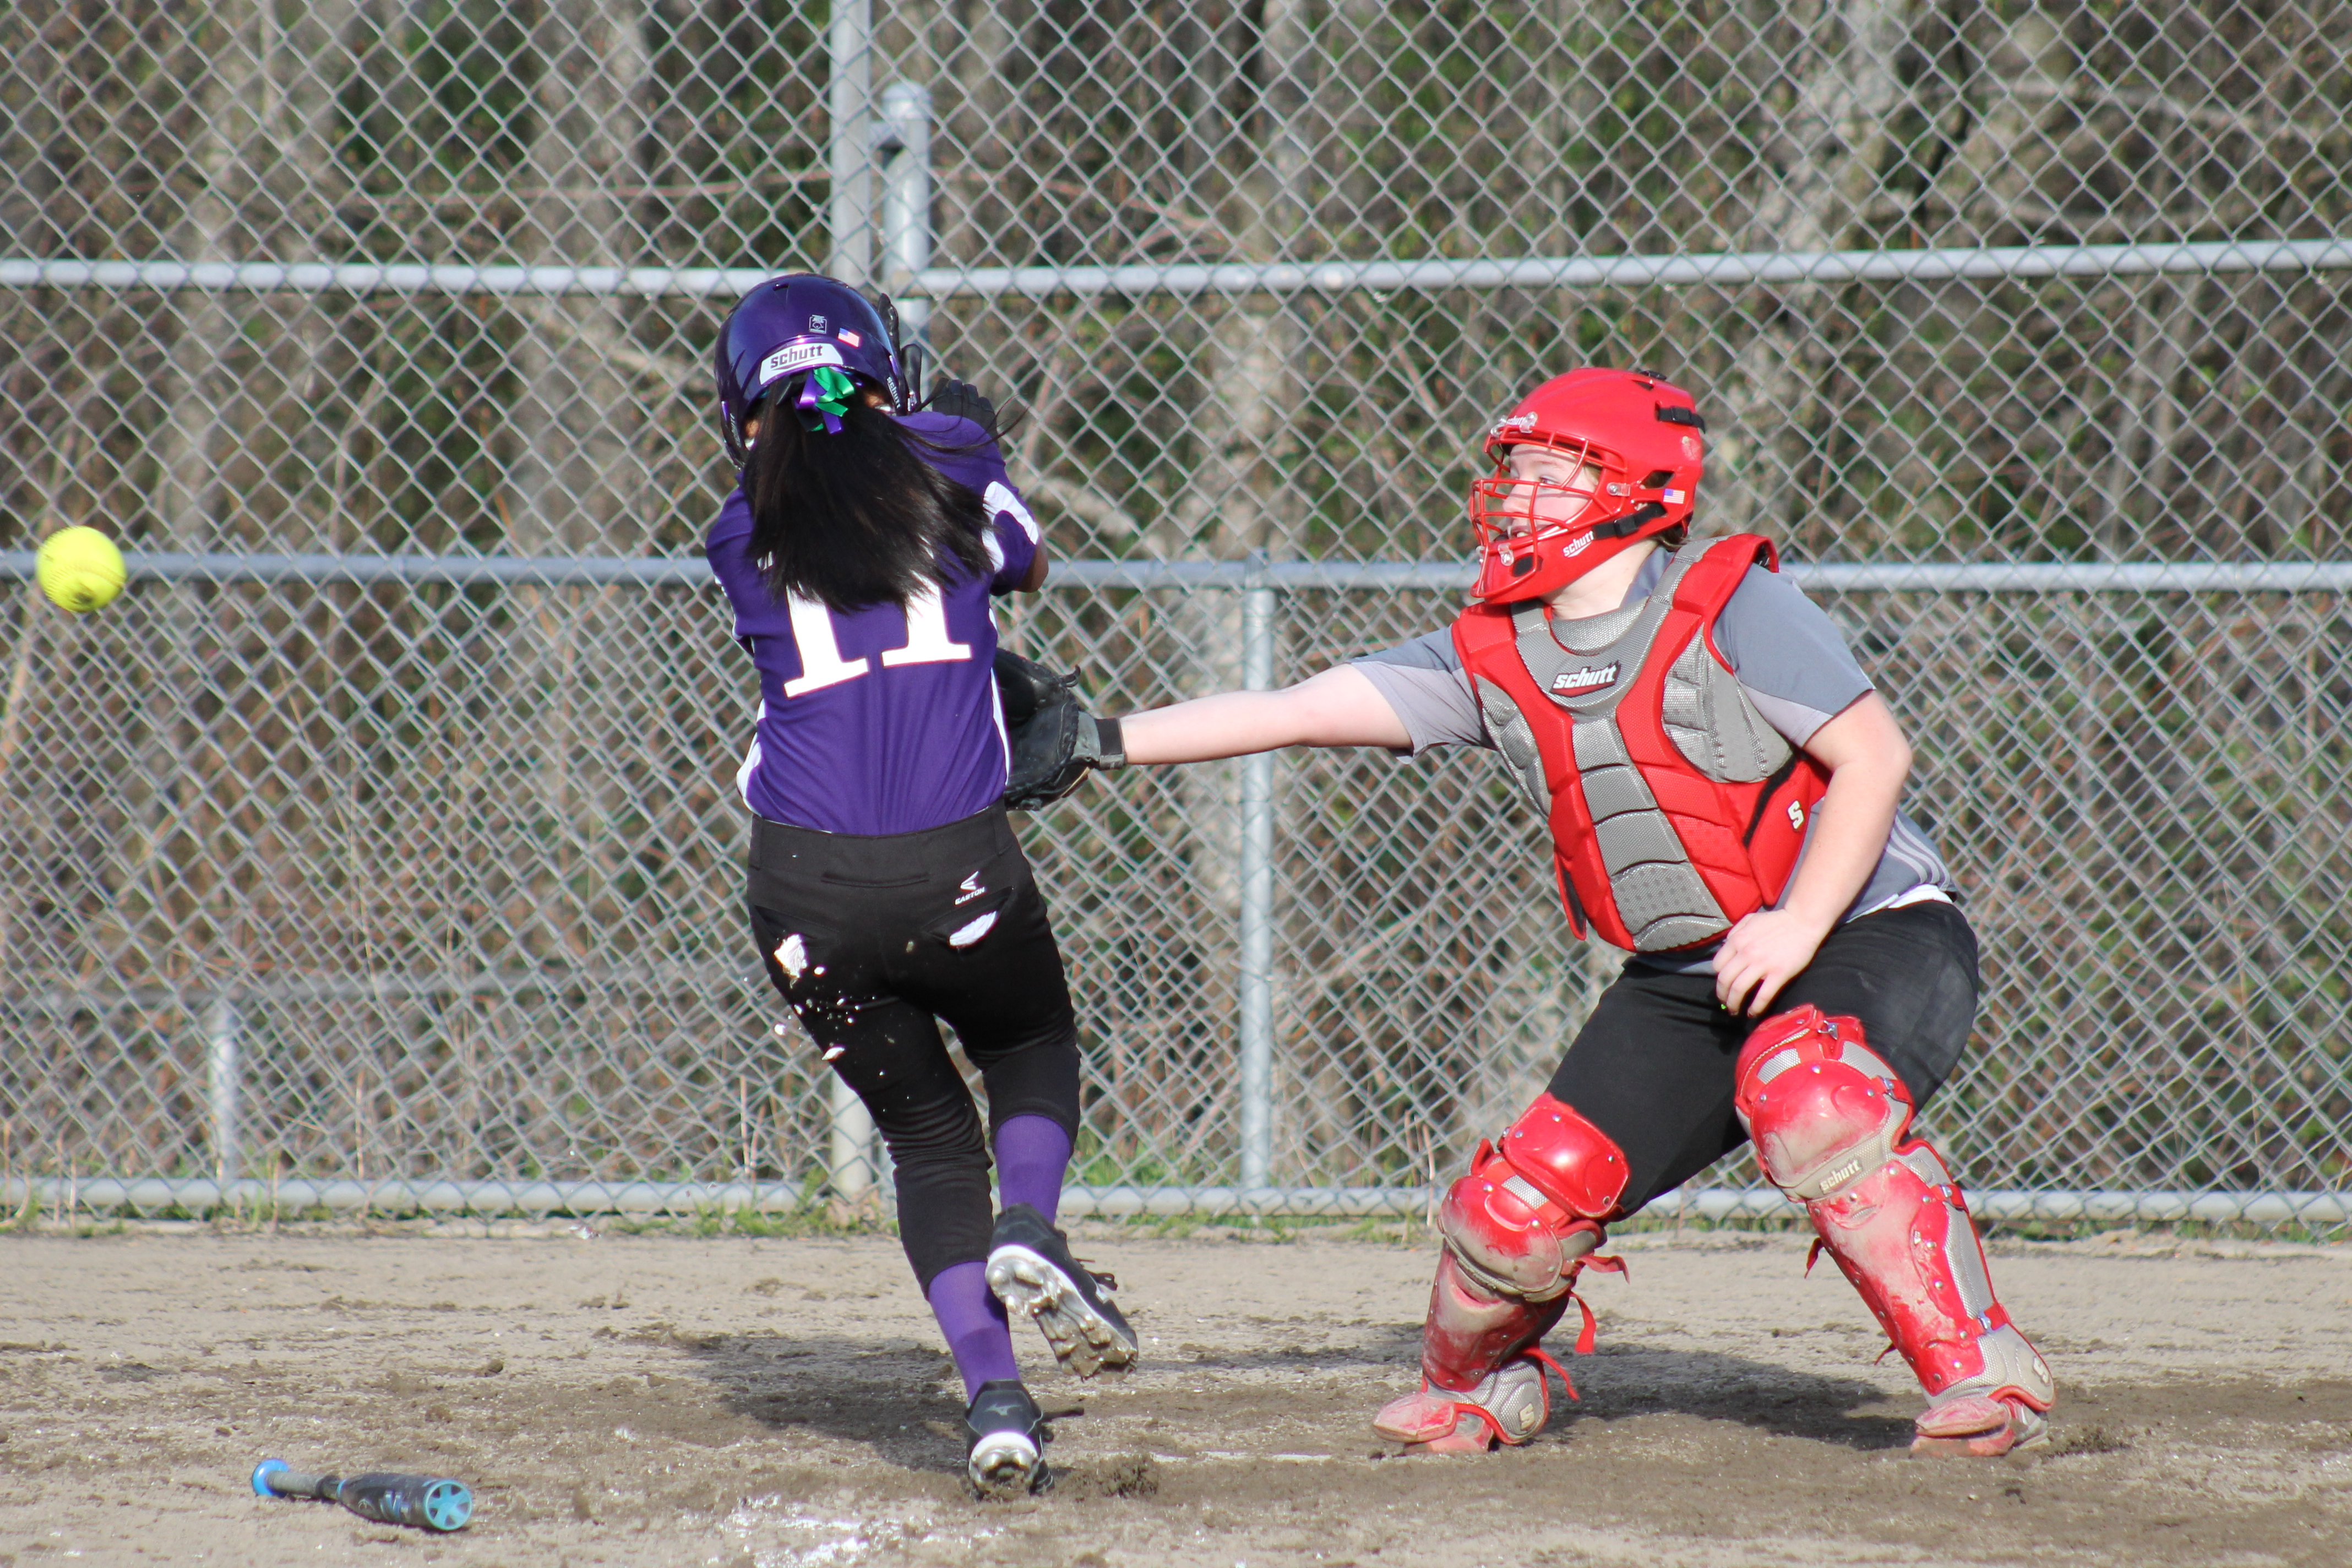 Prep Softball Wilcox 39 S Home Run Lifts Hawks Past Warriors In 8 Inning Thriller